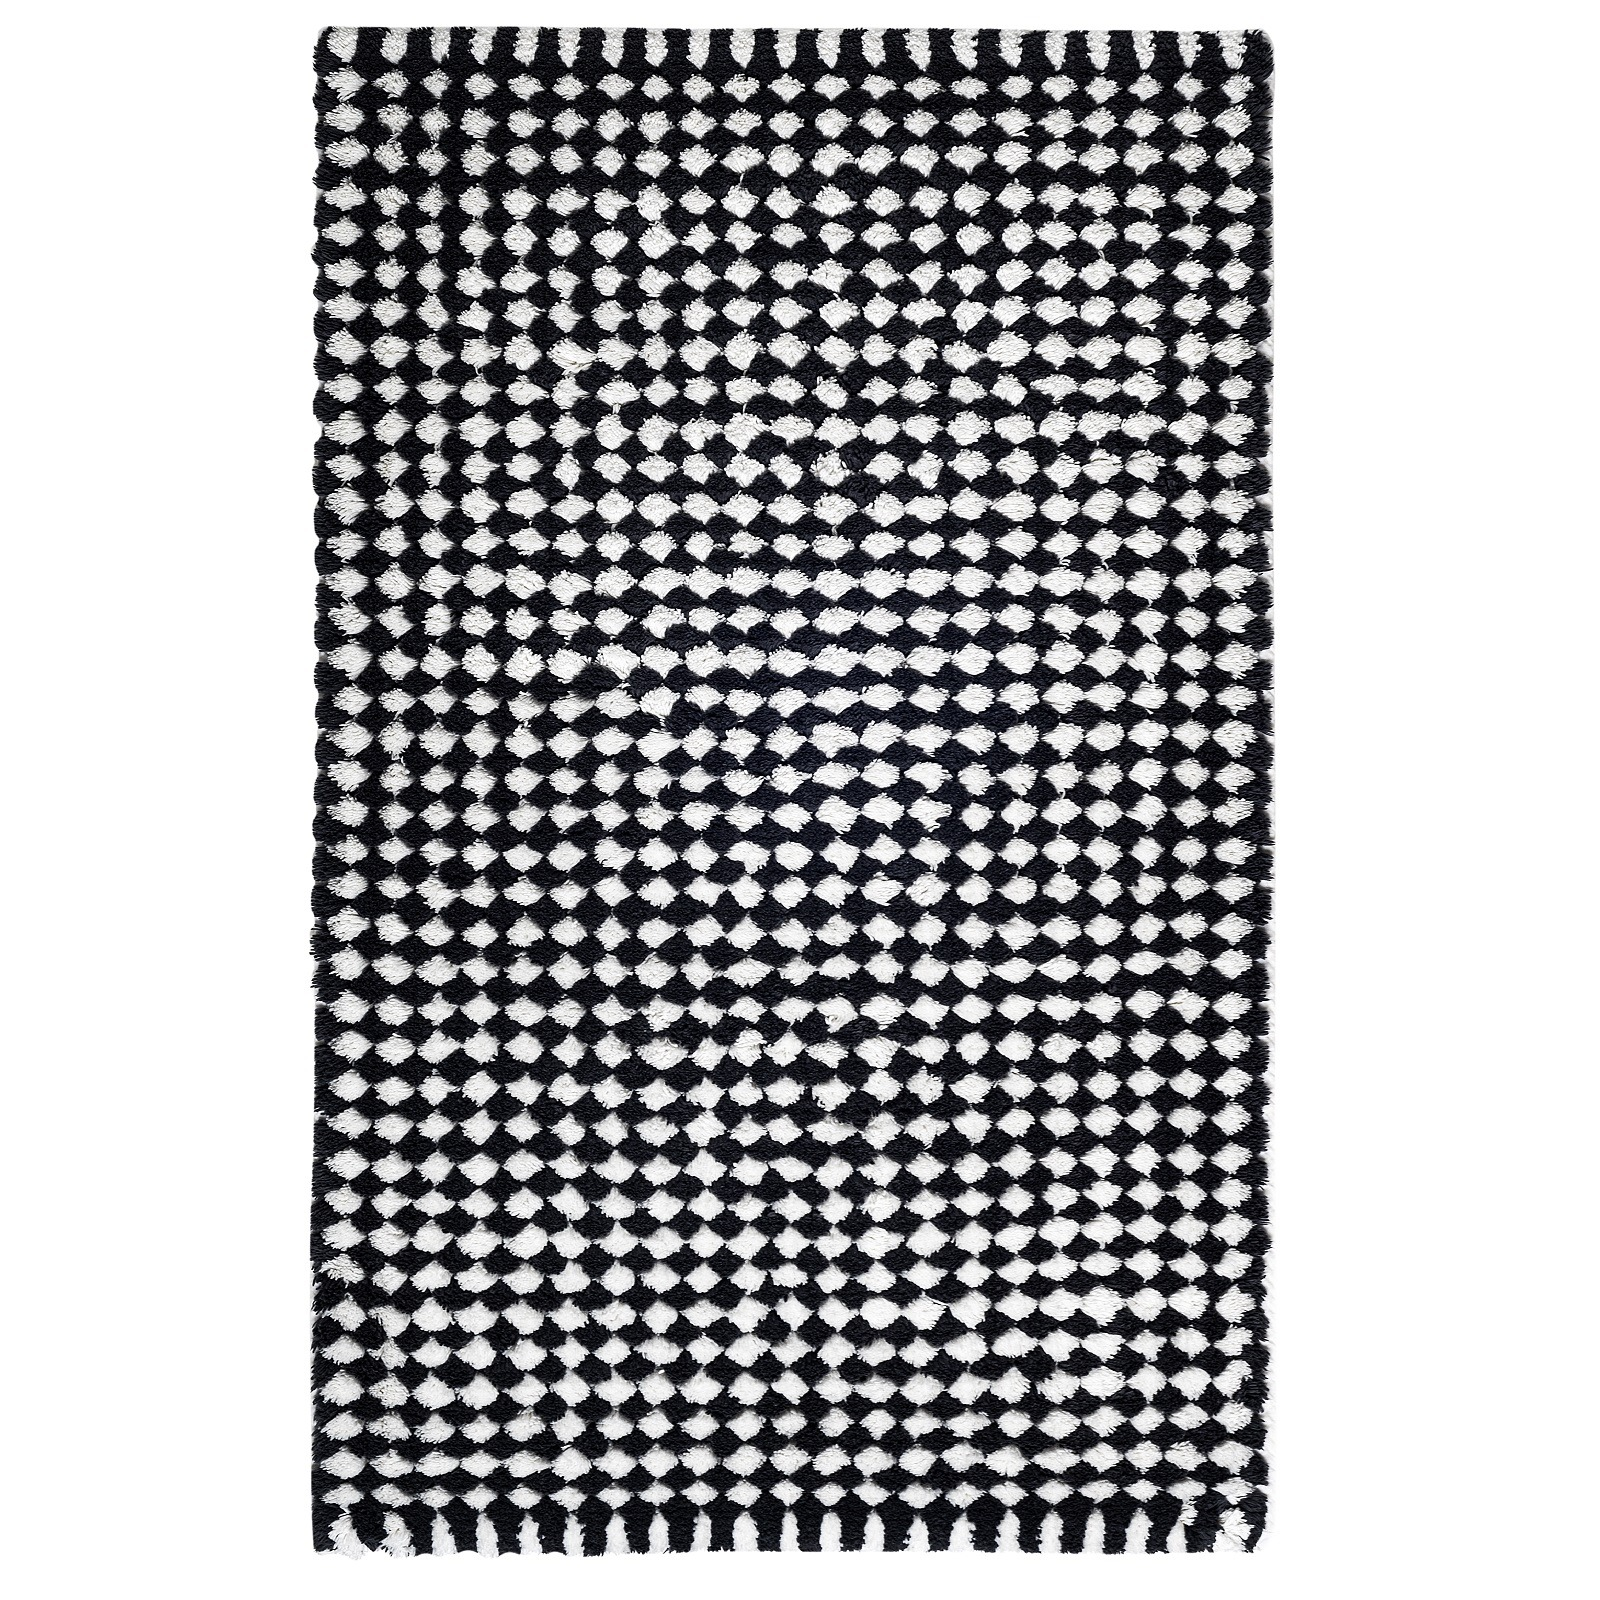 London Black & white Bath Rug